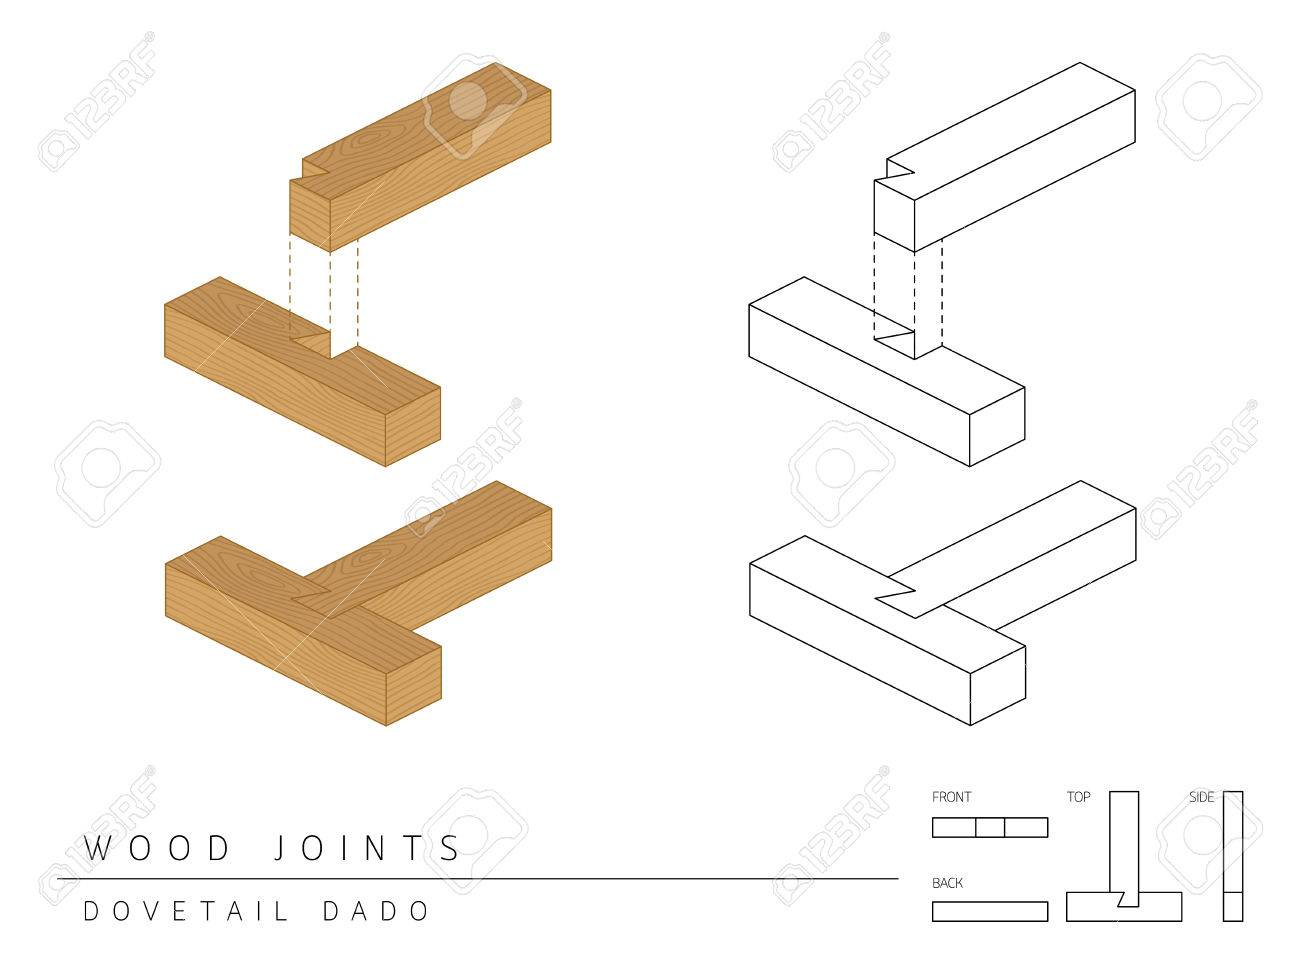 Type Of Wood Joint Set Dovetail Dado Style Perspective 3d With